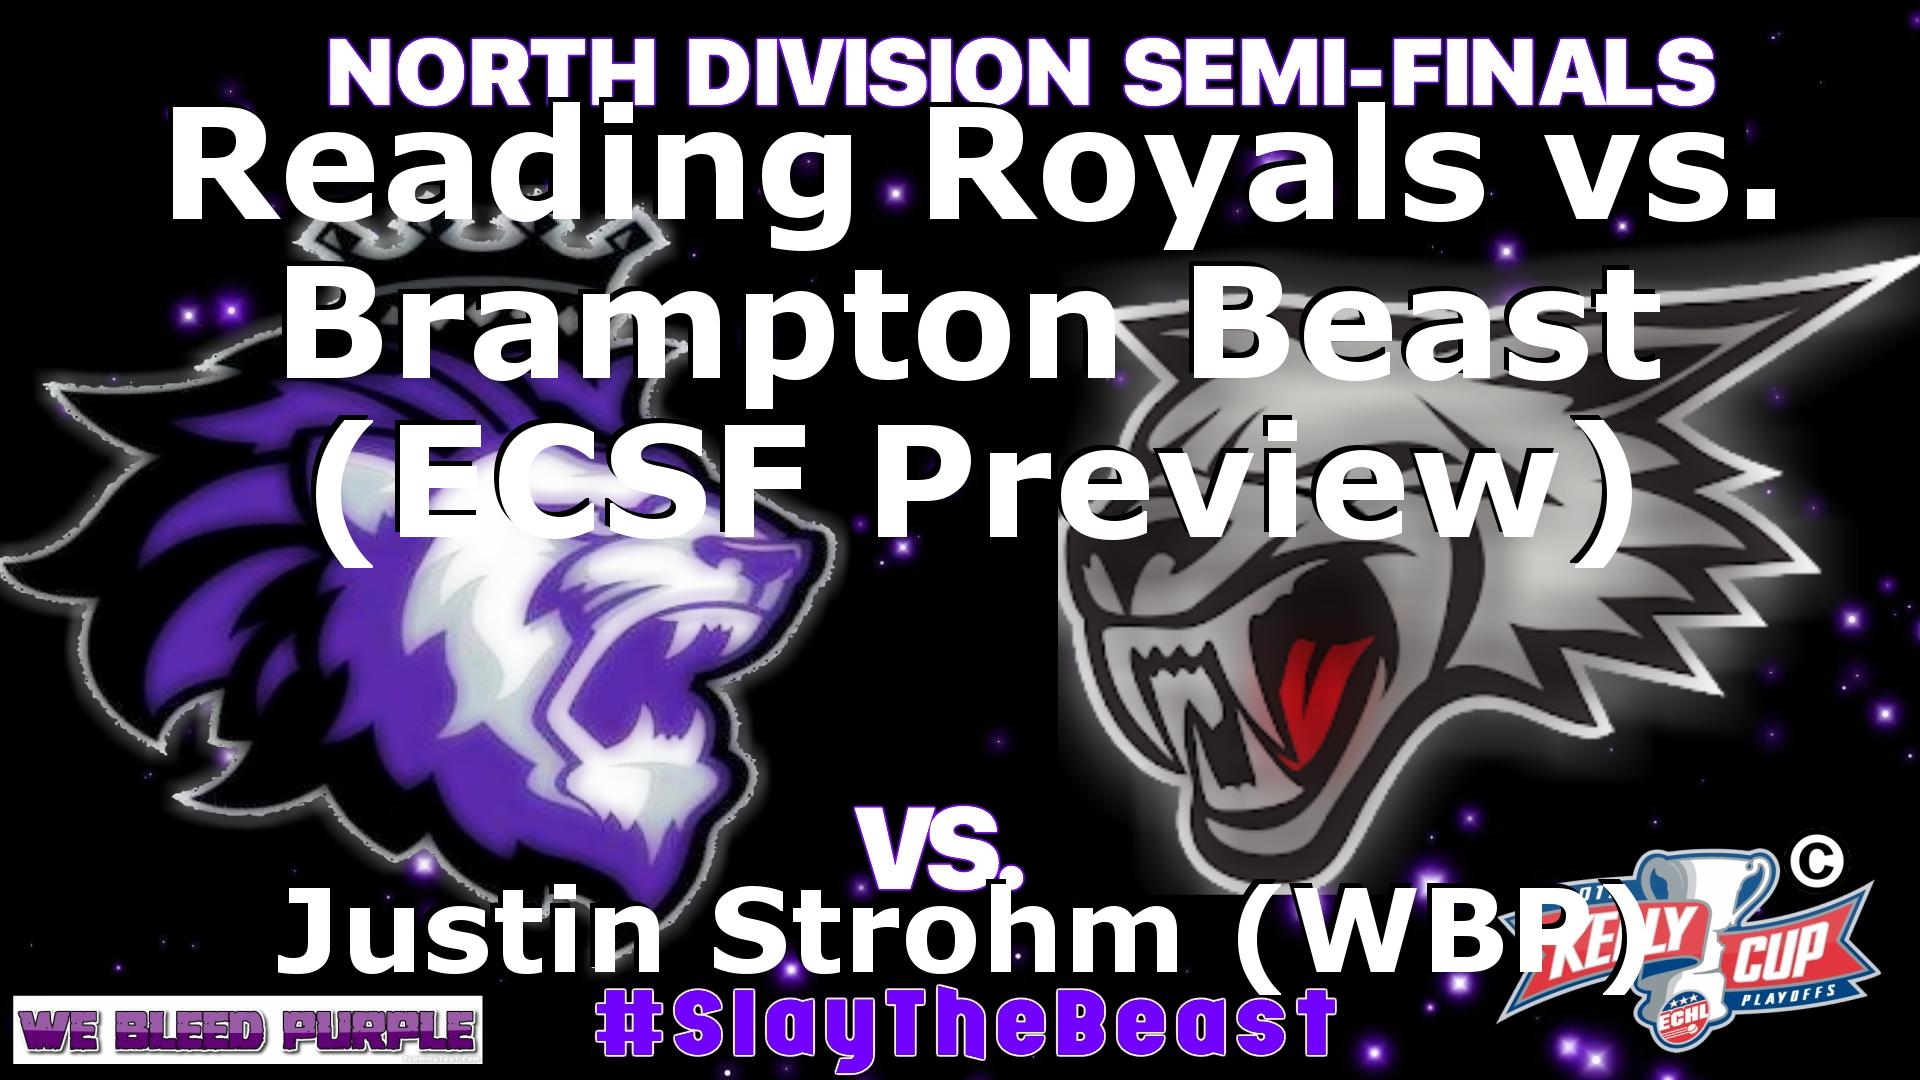 reading royals vs. brampton beast (ecsf preview), article by justin